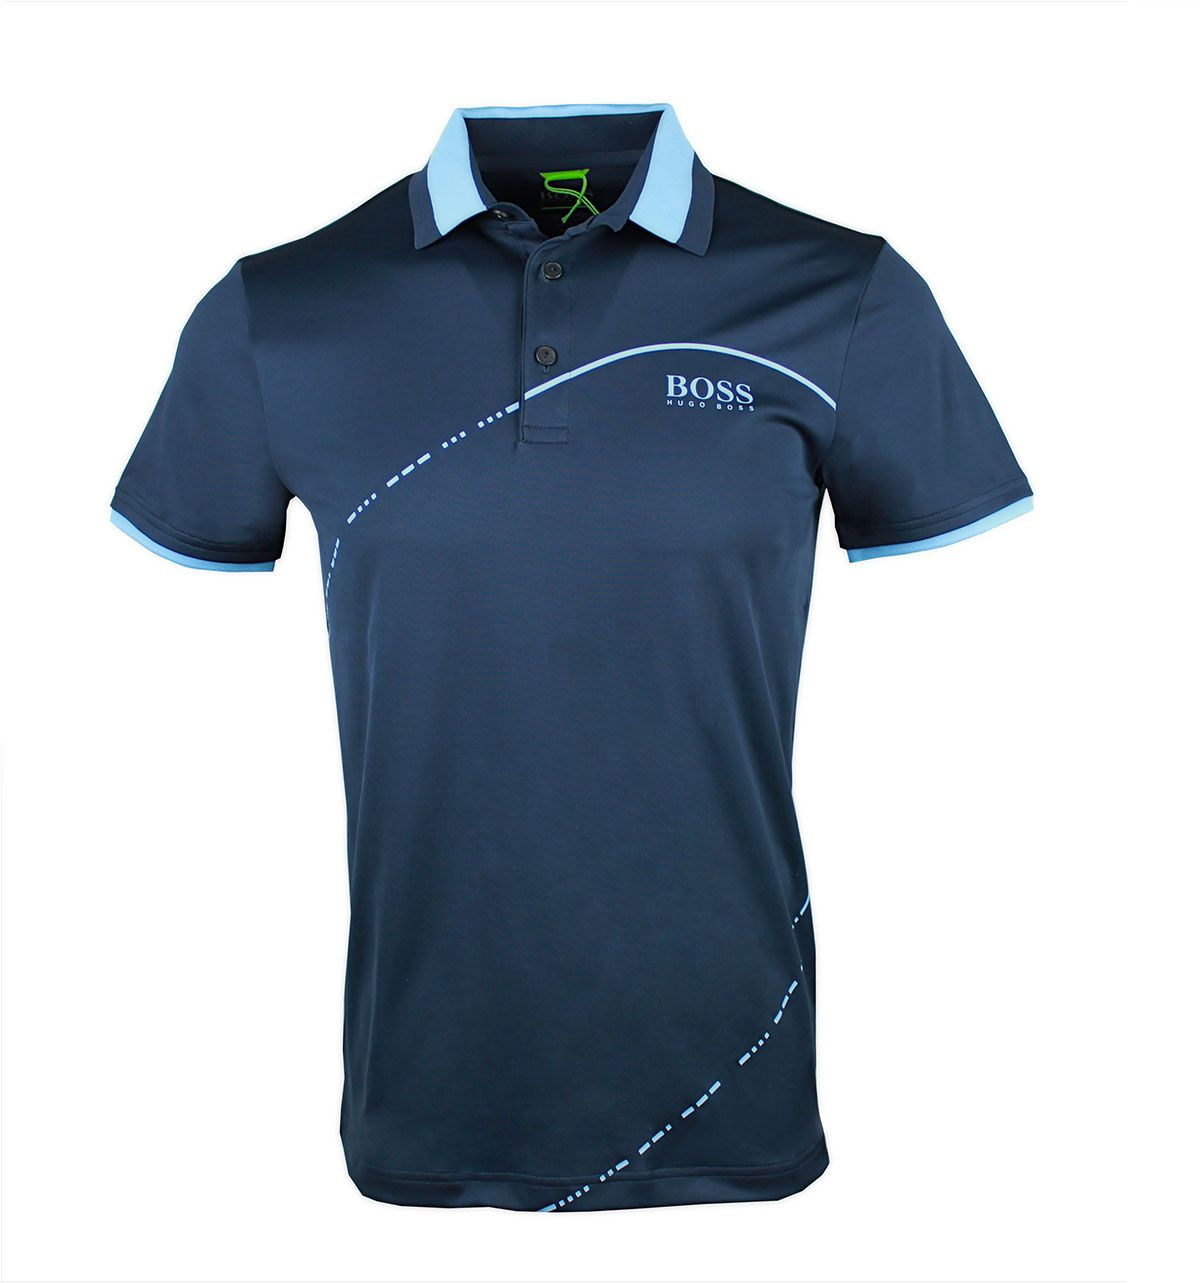 e1fcece83 Hugo Boss Paddy Pro 2 Golf Shirt – Jane AI Mall | Hugo Boss Style ...